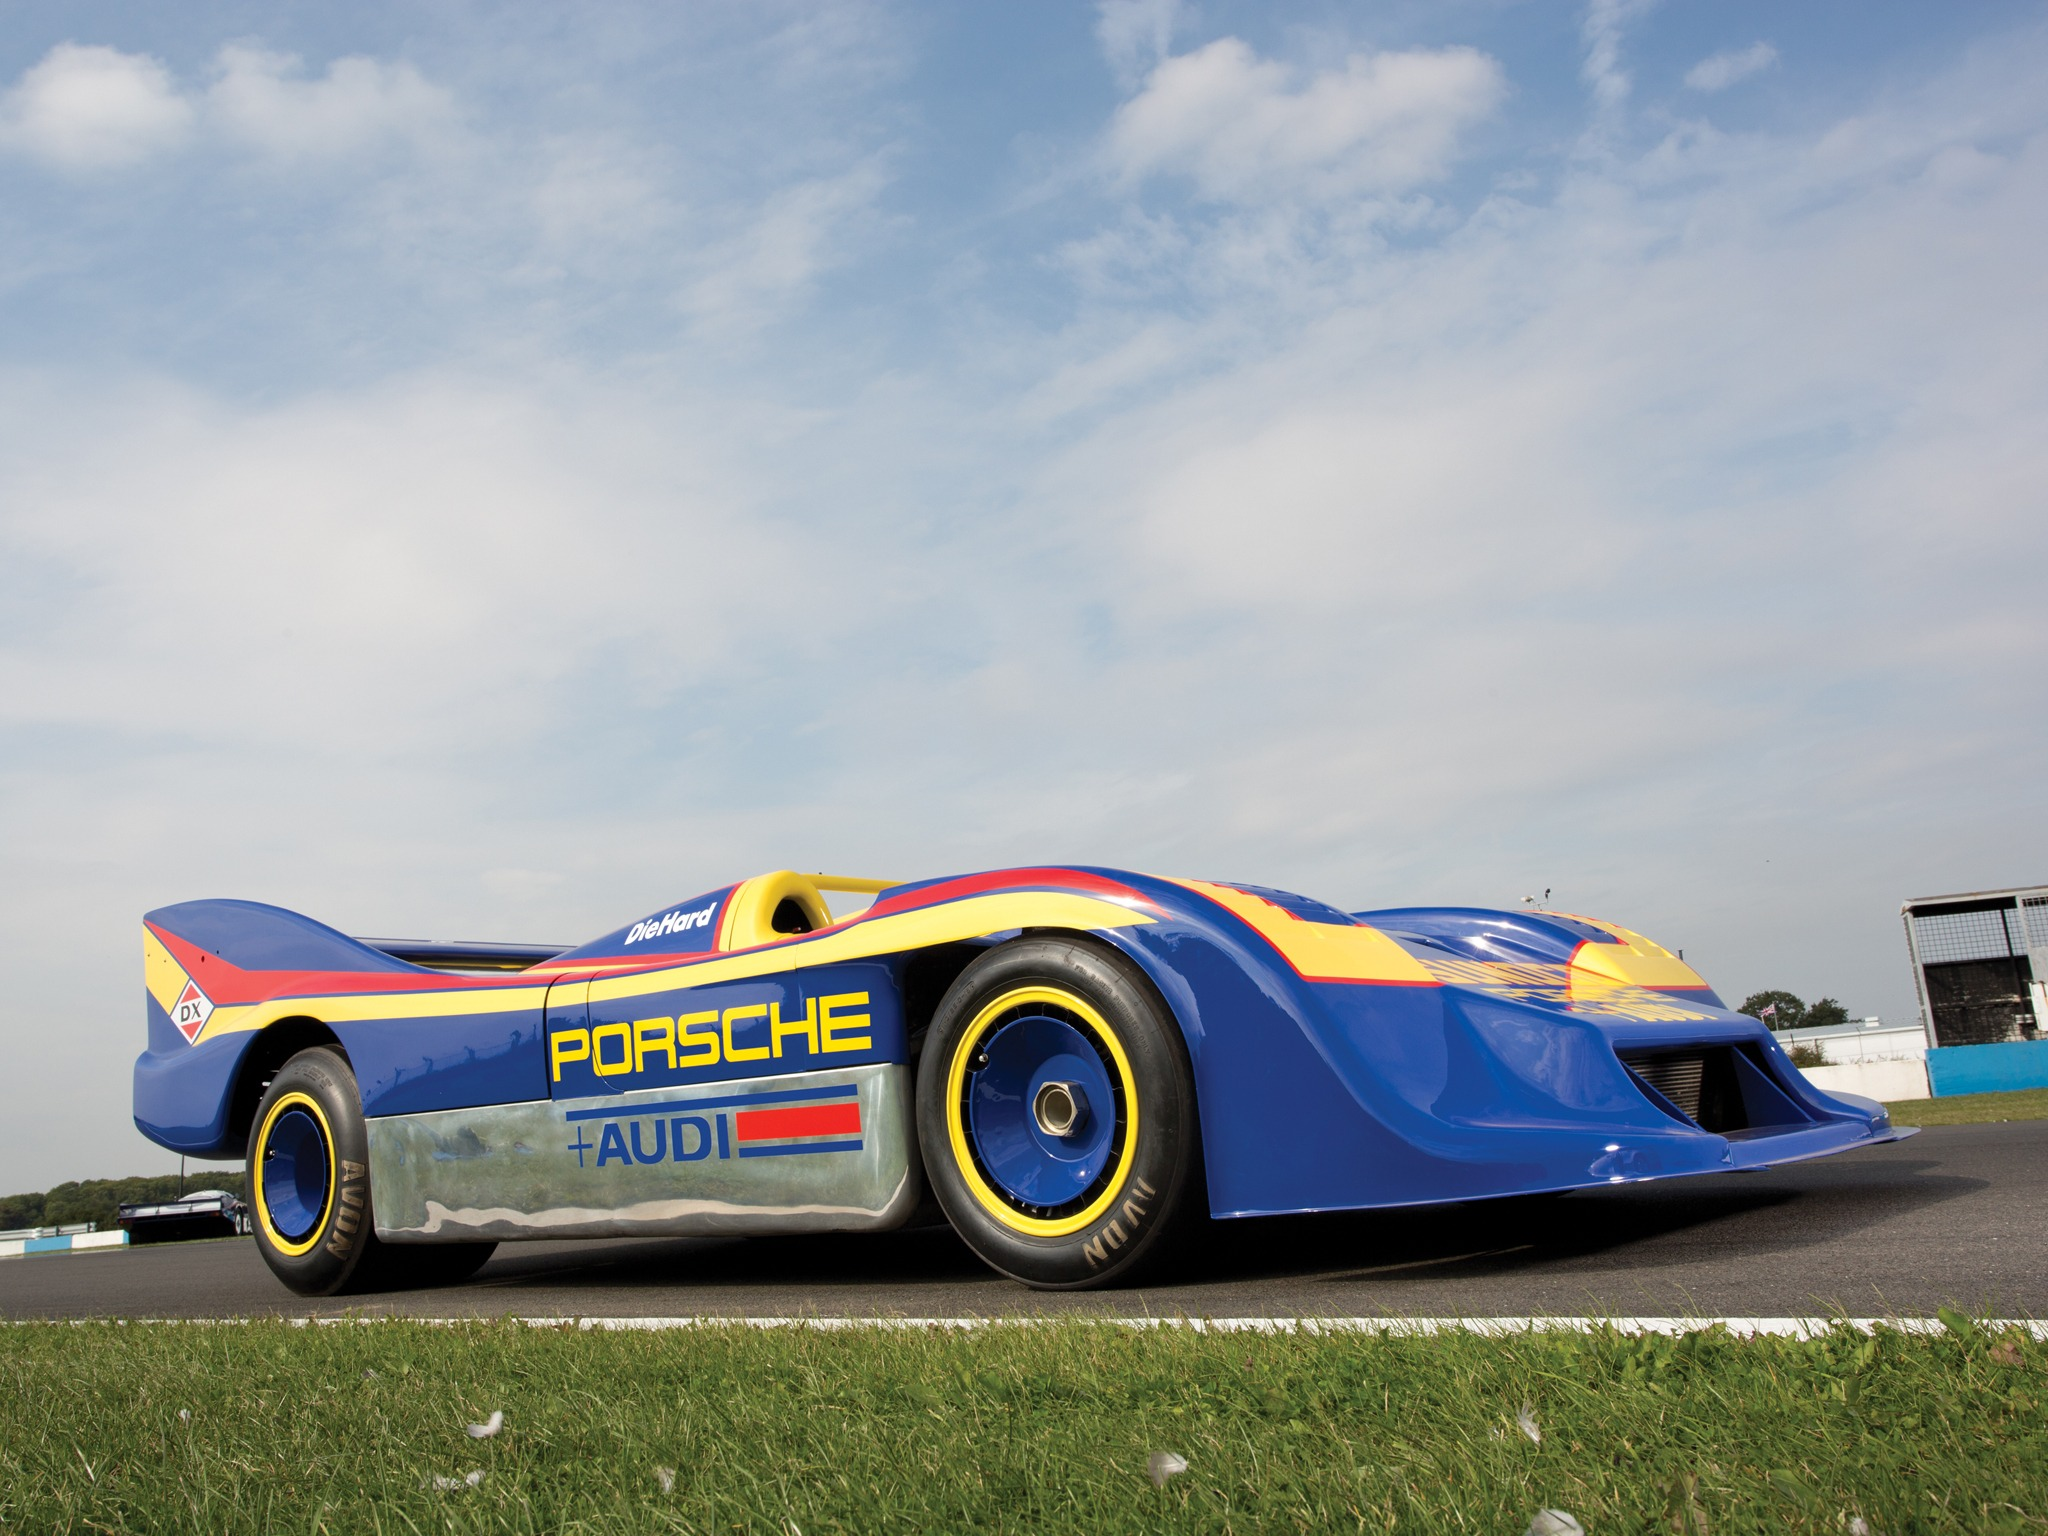 Porsche 917/30 Can-Am Spyder (1973) - Old Concept Cars